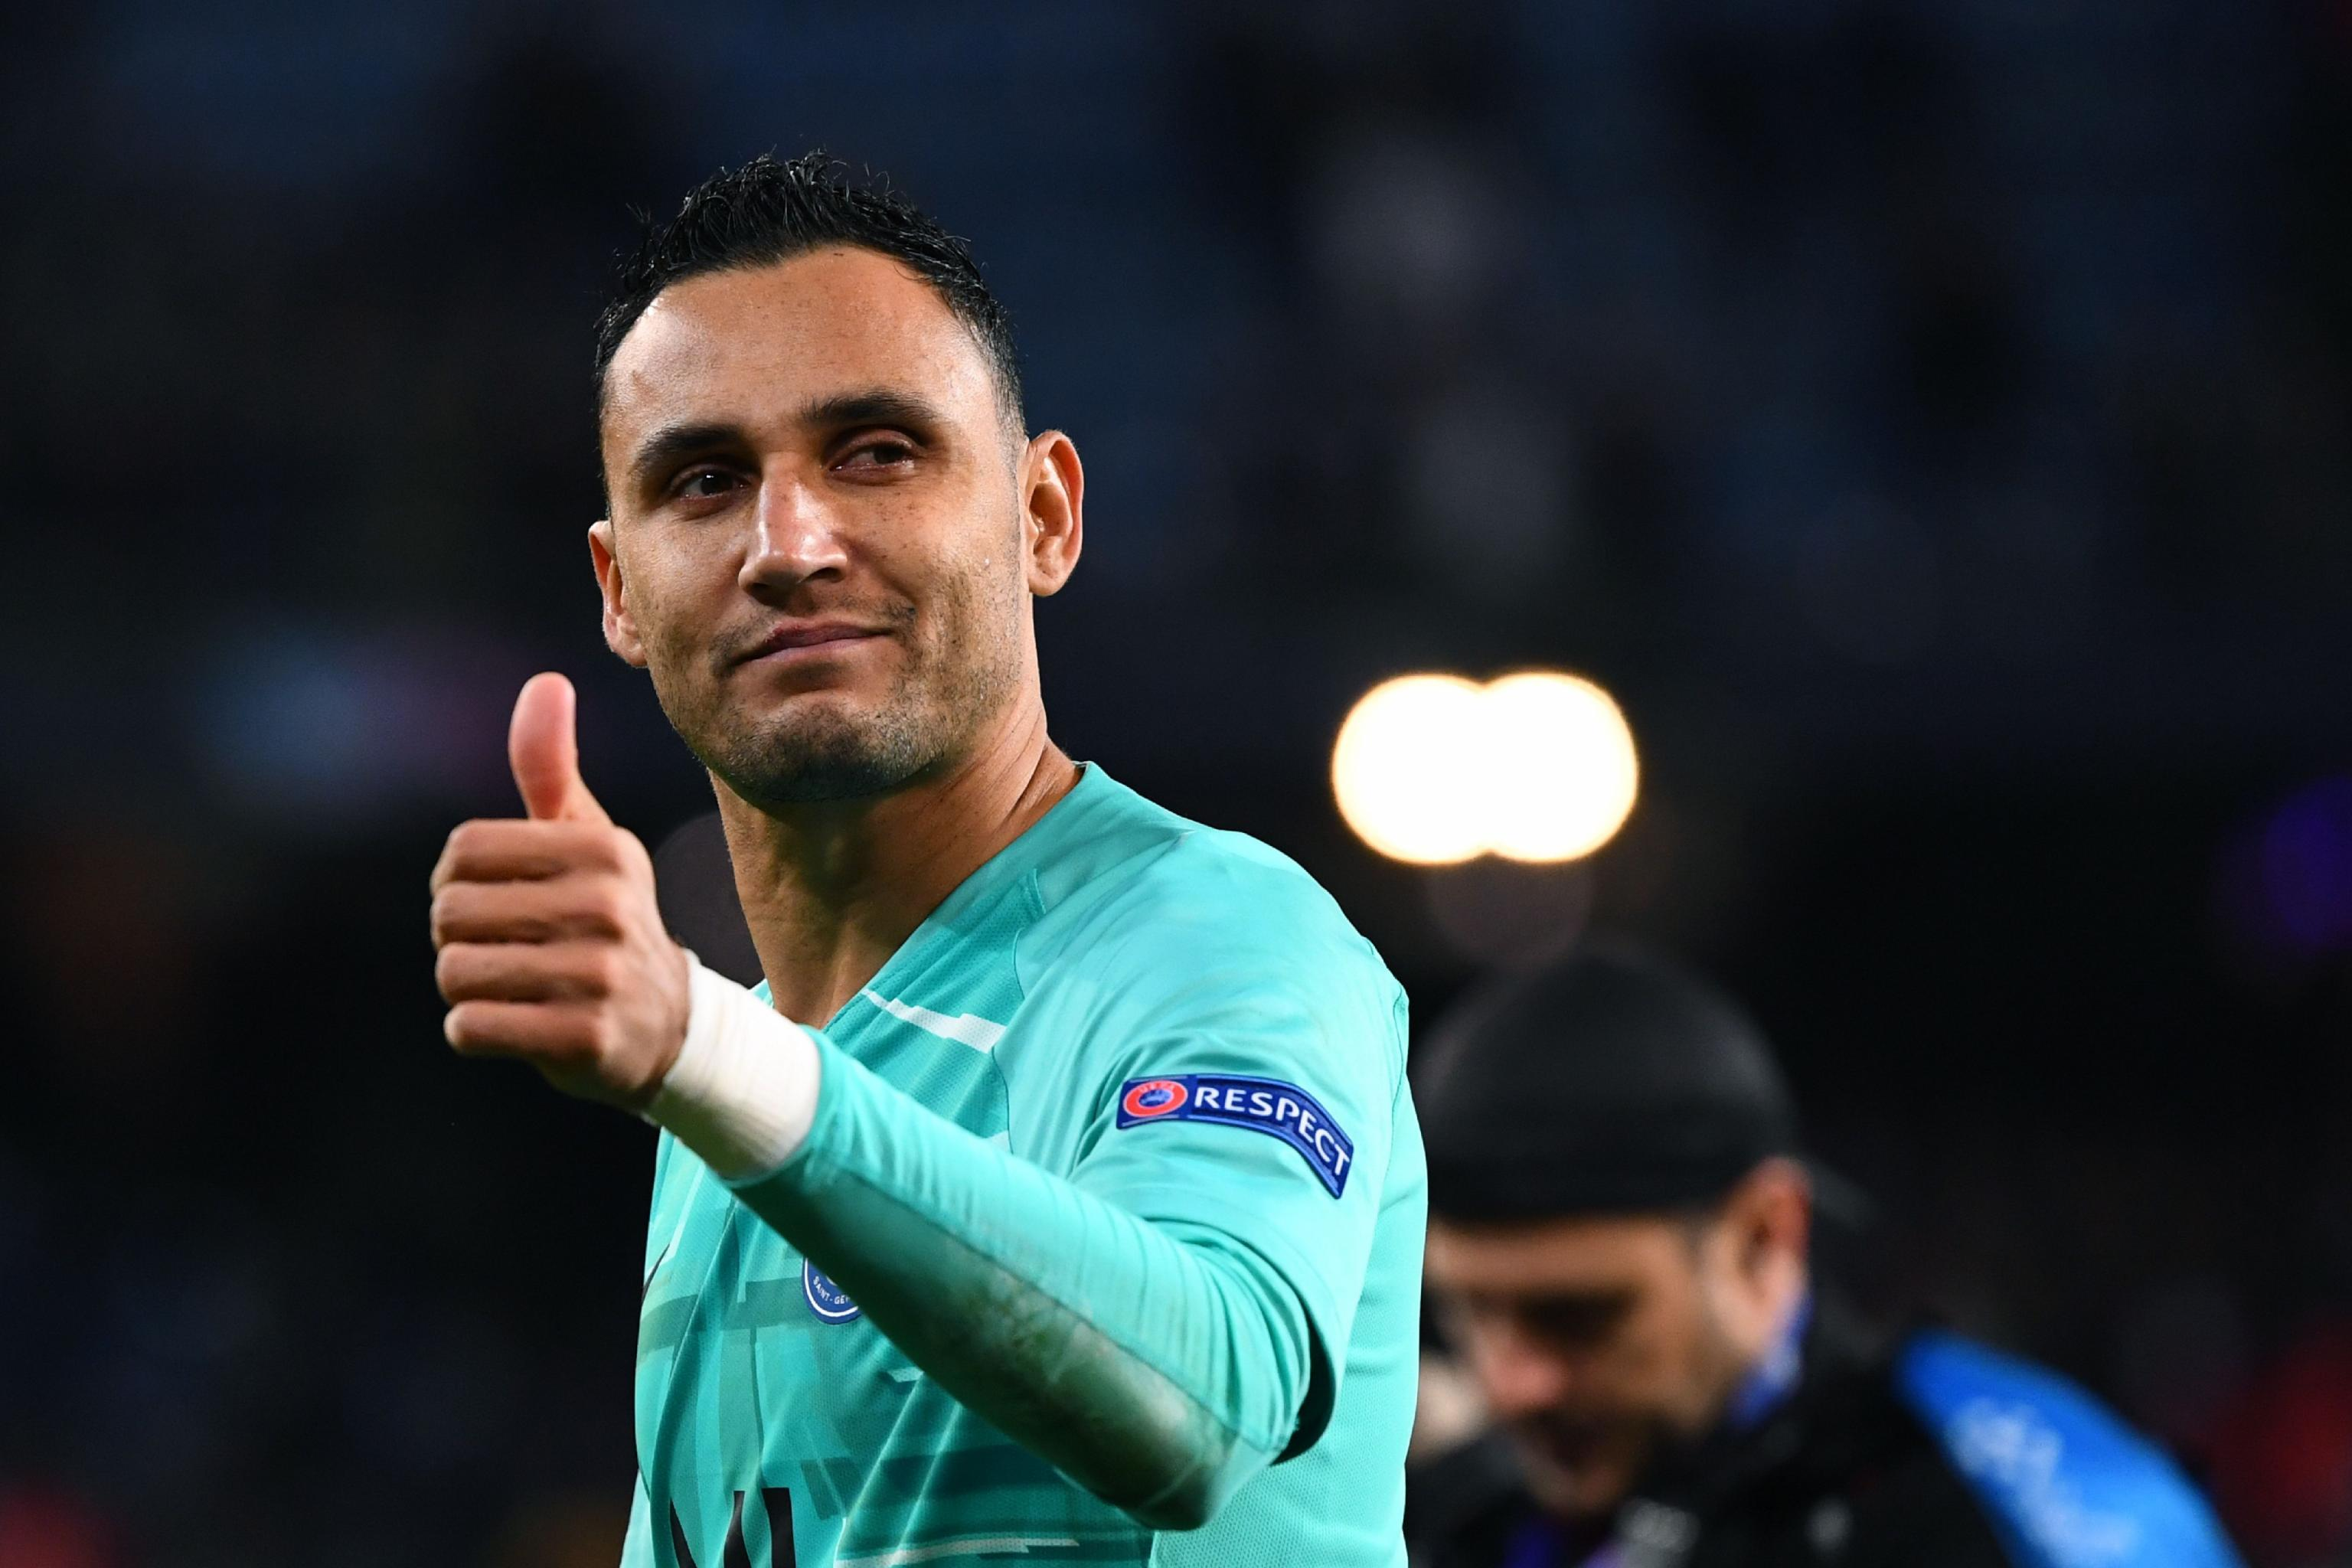 PSG's Keylor Navas Says He Does Not Know Why He Had to Leave Real Madrid |  Bleacher Report | Latest News, Videos and Highlights